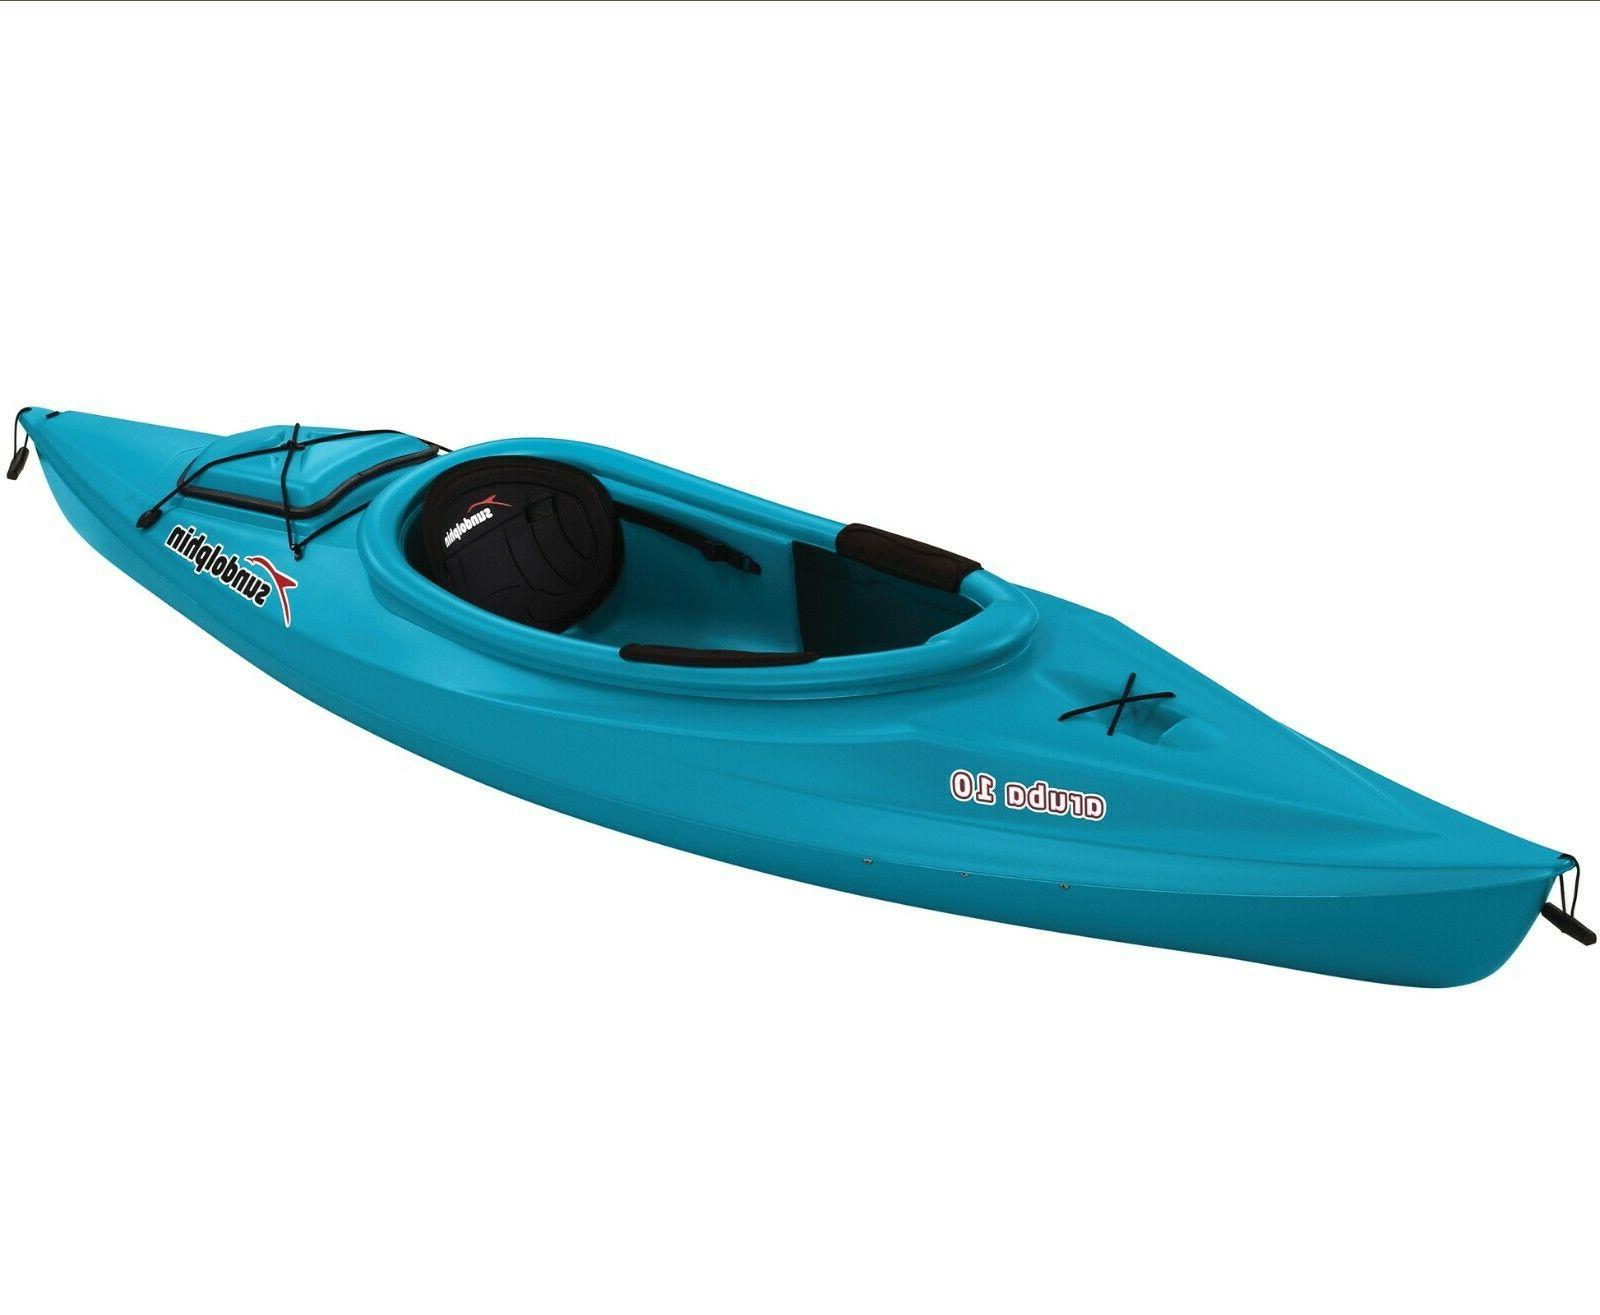 "Sun Aruba Sit Kayak Fishing Boat 86"" Paddle"